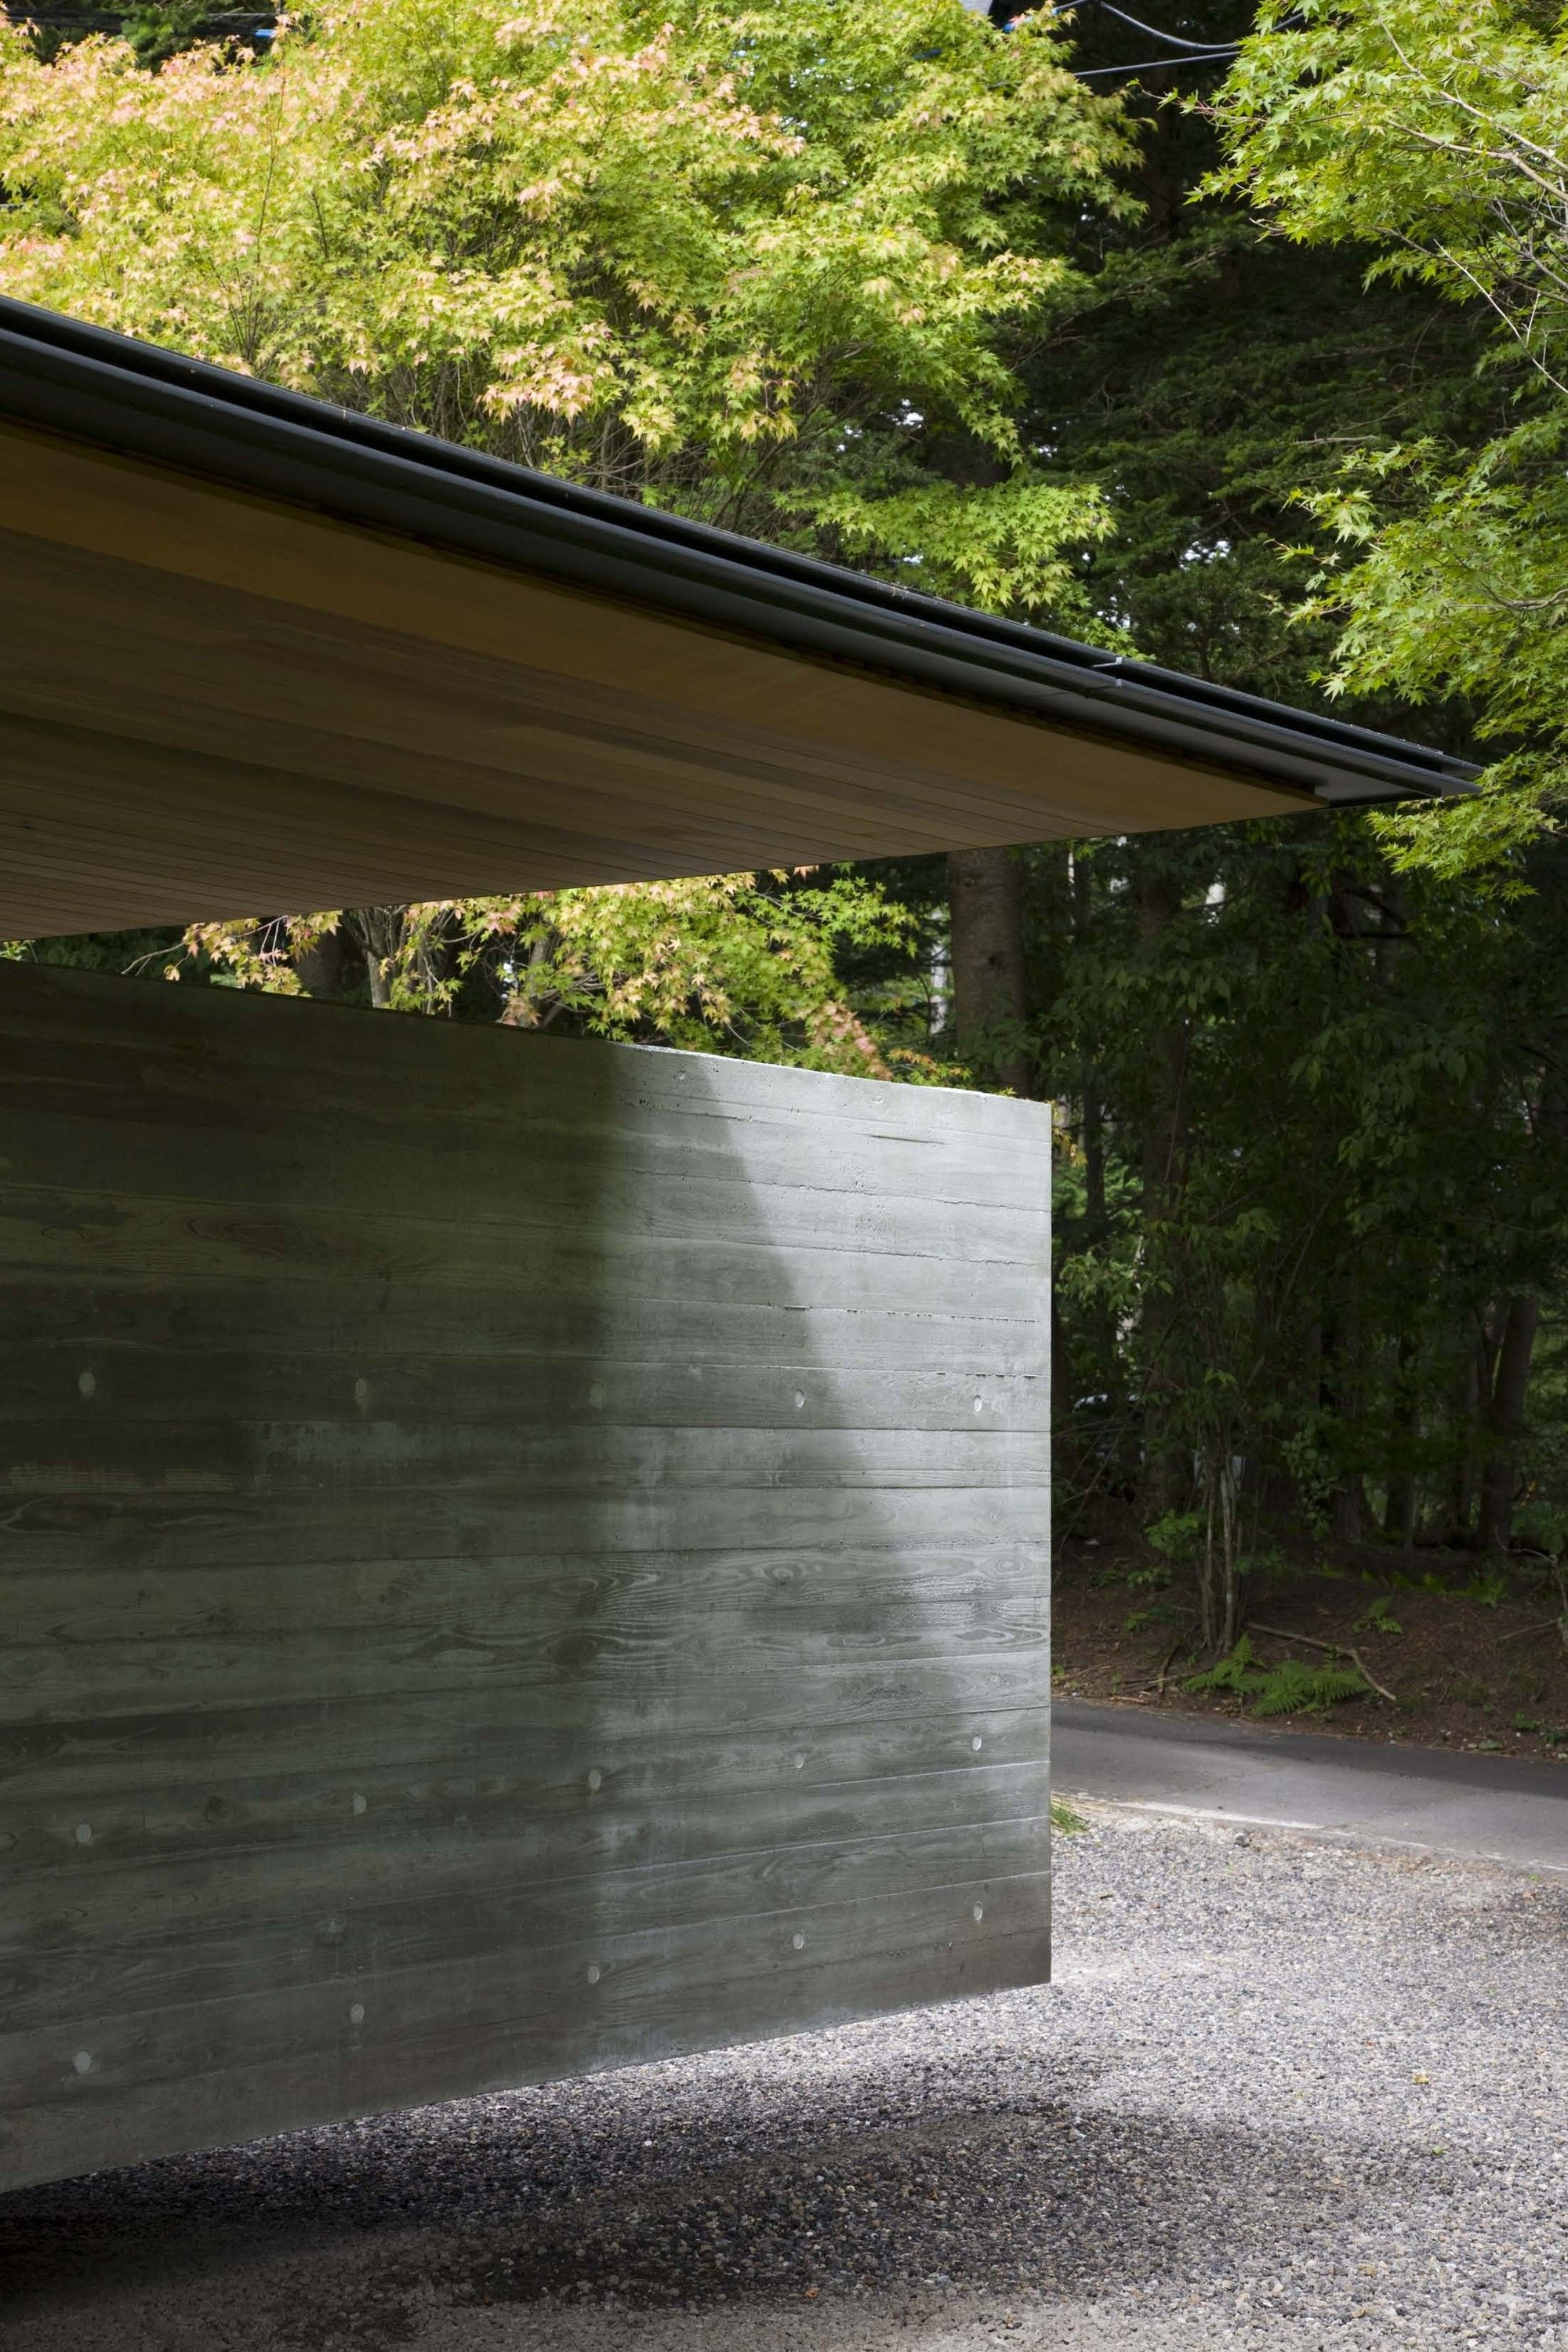 Cantilever, Mountain House In Nagano, Japan | Rustic\Cabins | Pinterest |  Nagano Japan, Nagano And Mountain Houses Design Inspirations